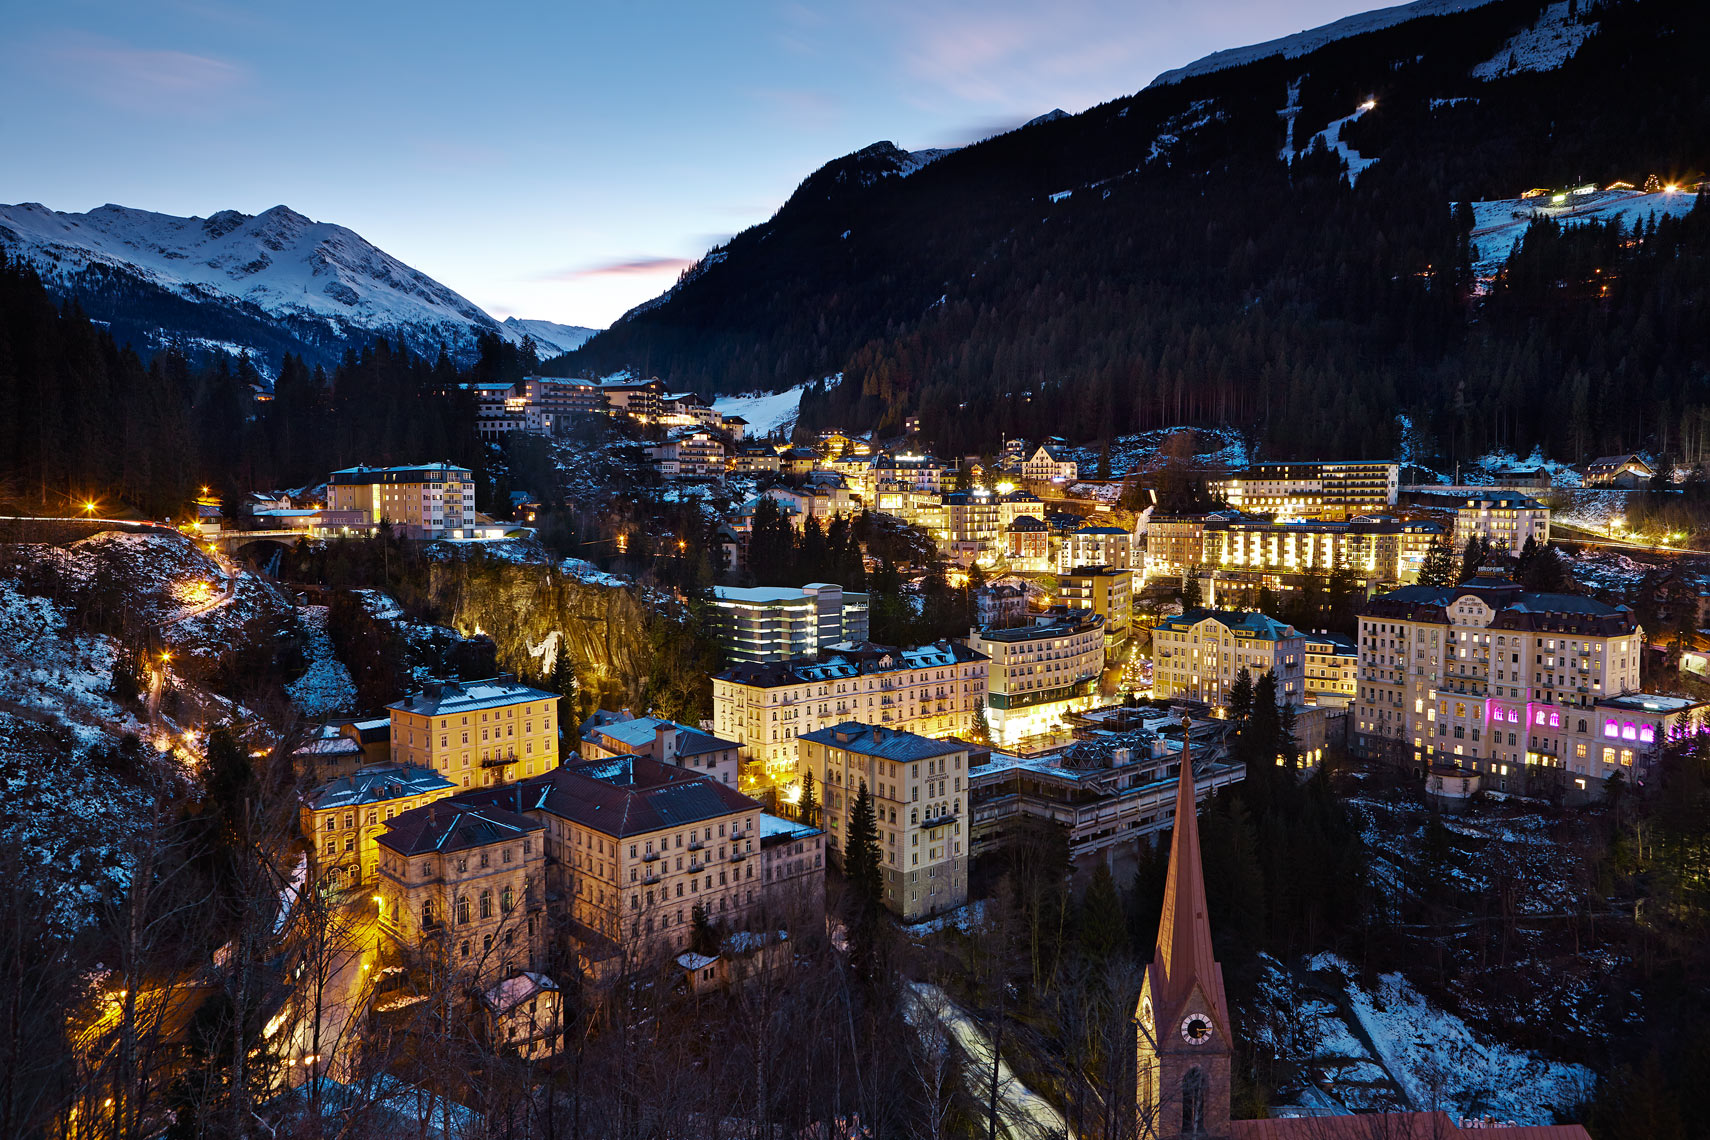 Bad Gastein at night